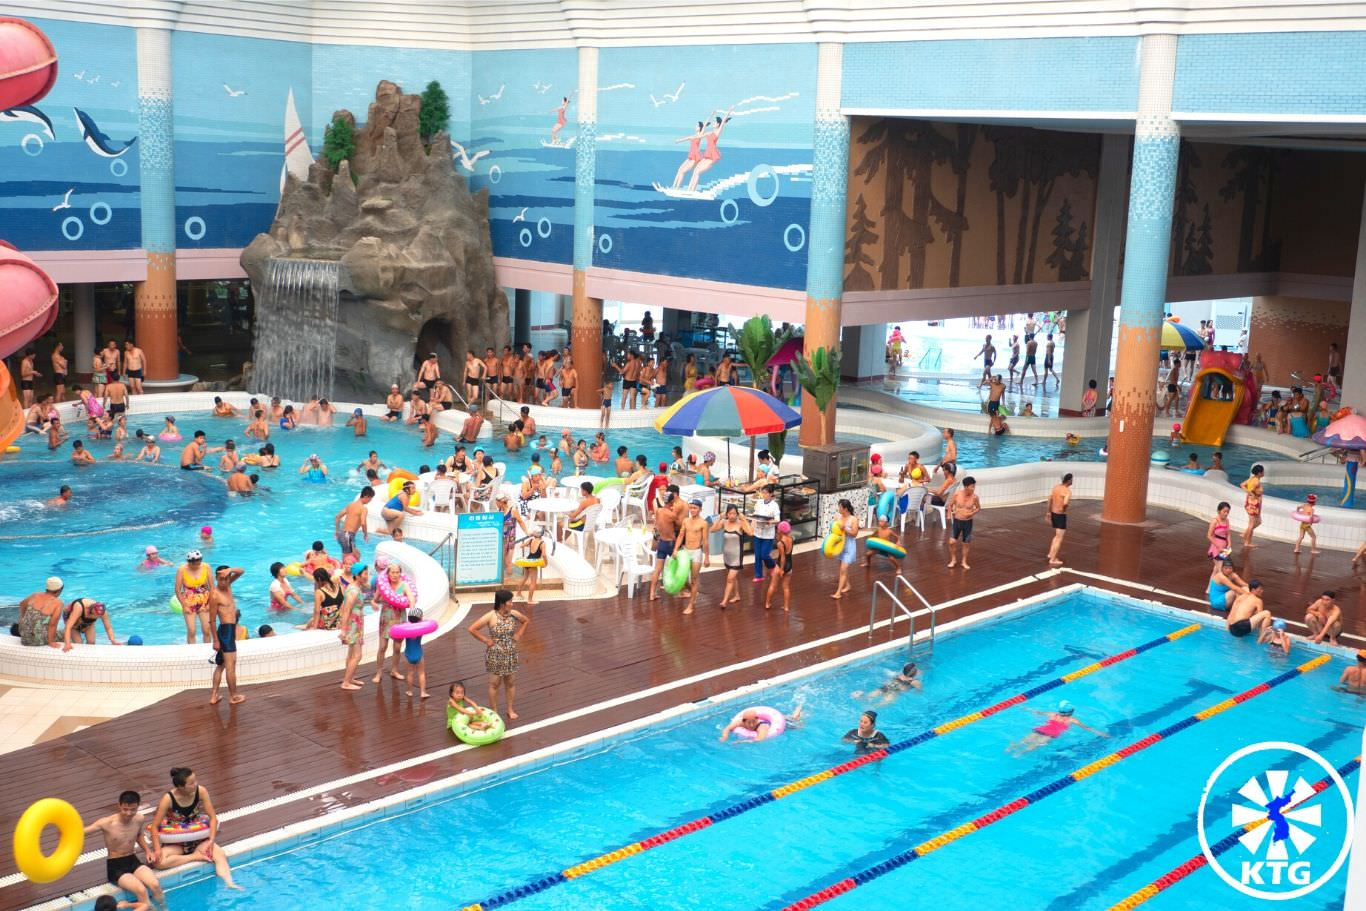 Munsu Waterpark in Pyongyang, North Korea (DPRK) with KTG® Tours